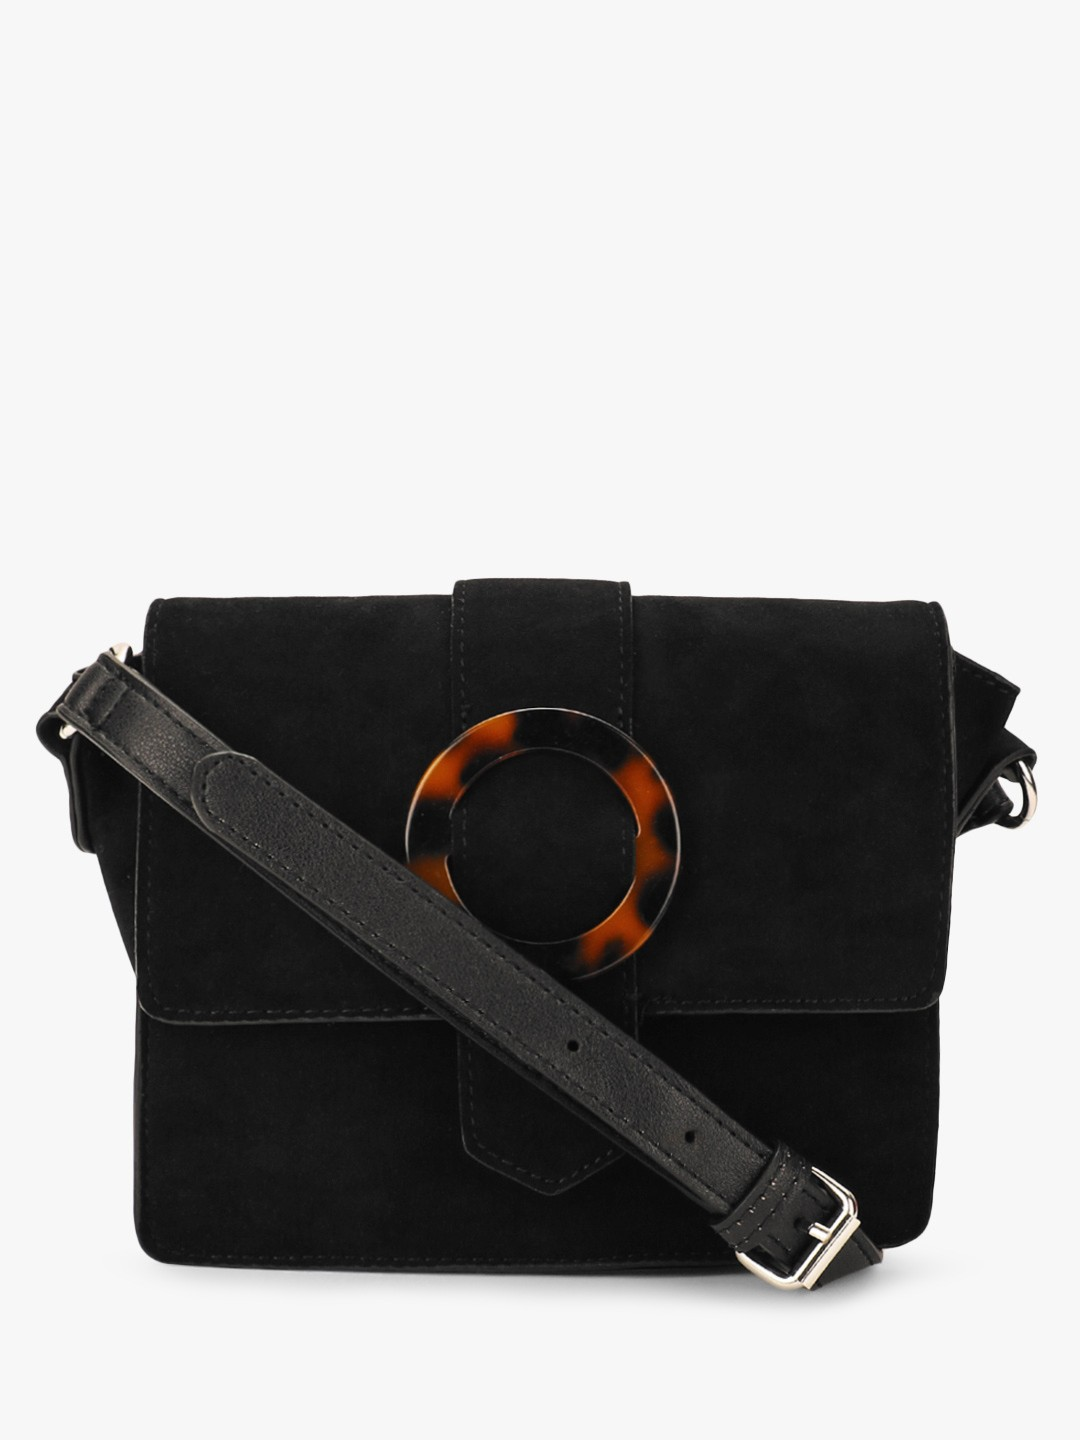 New Look Black Tortoise Shell Buckle Sling Bag 1